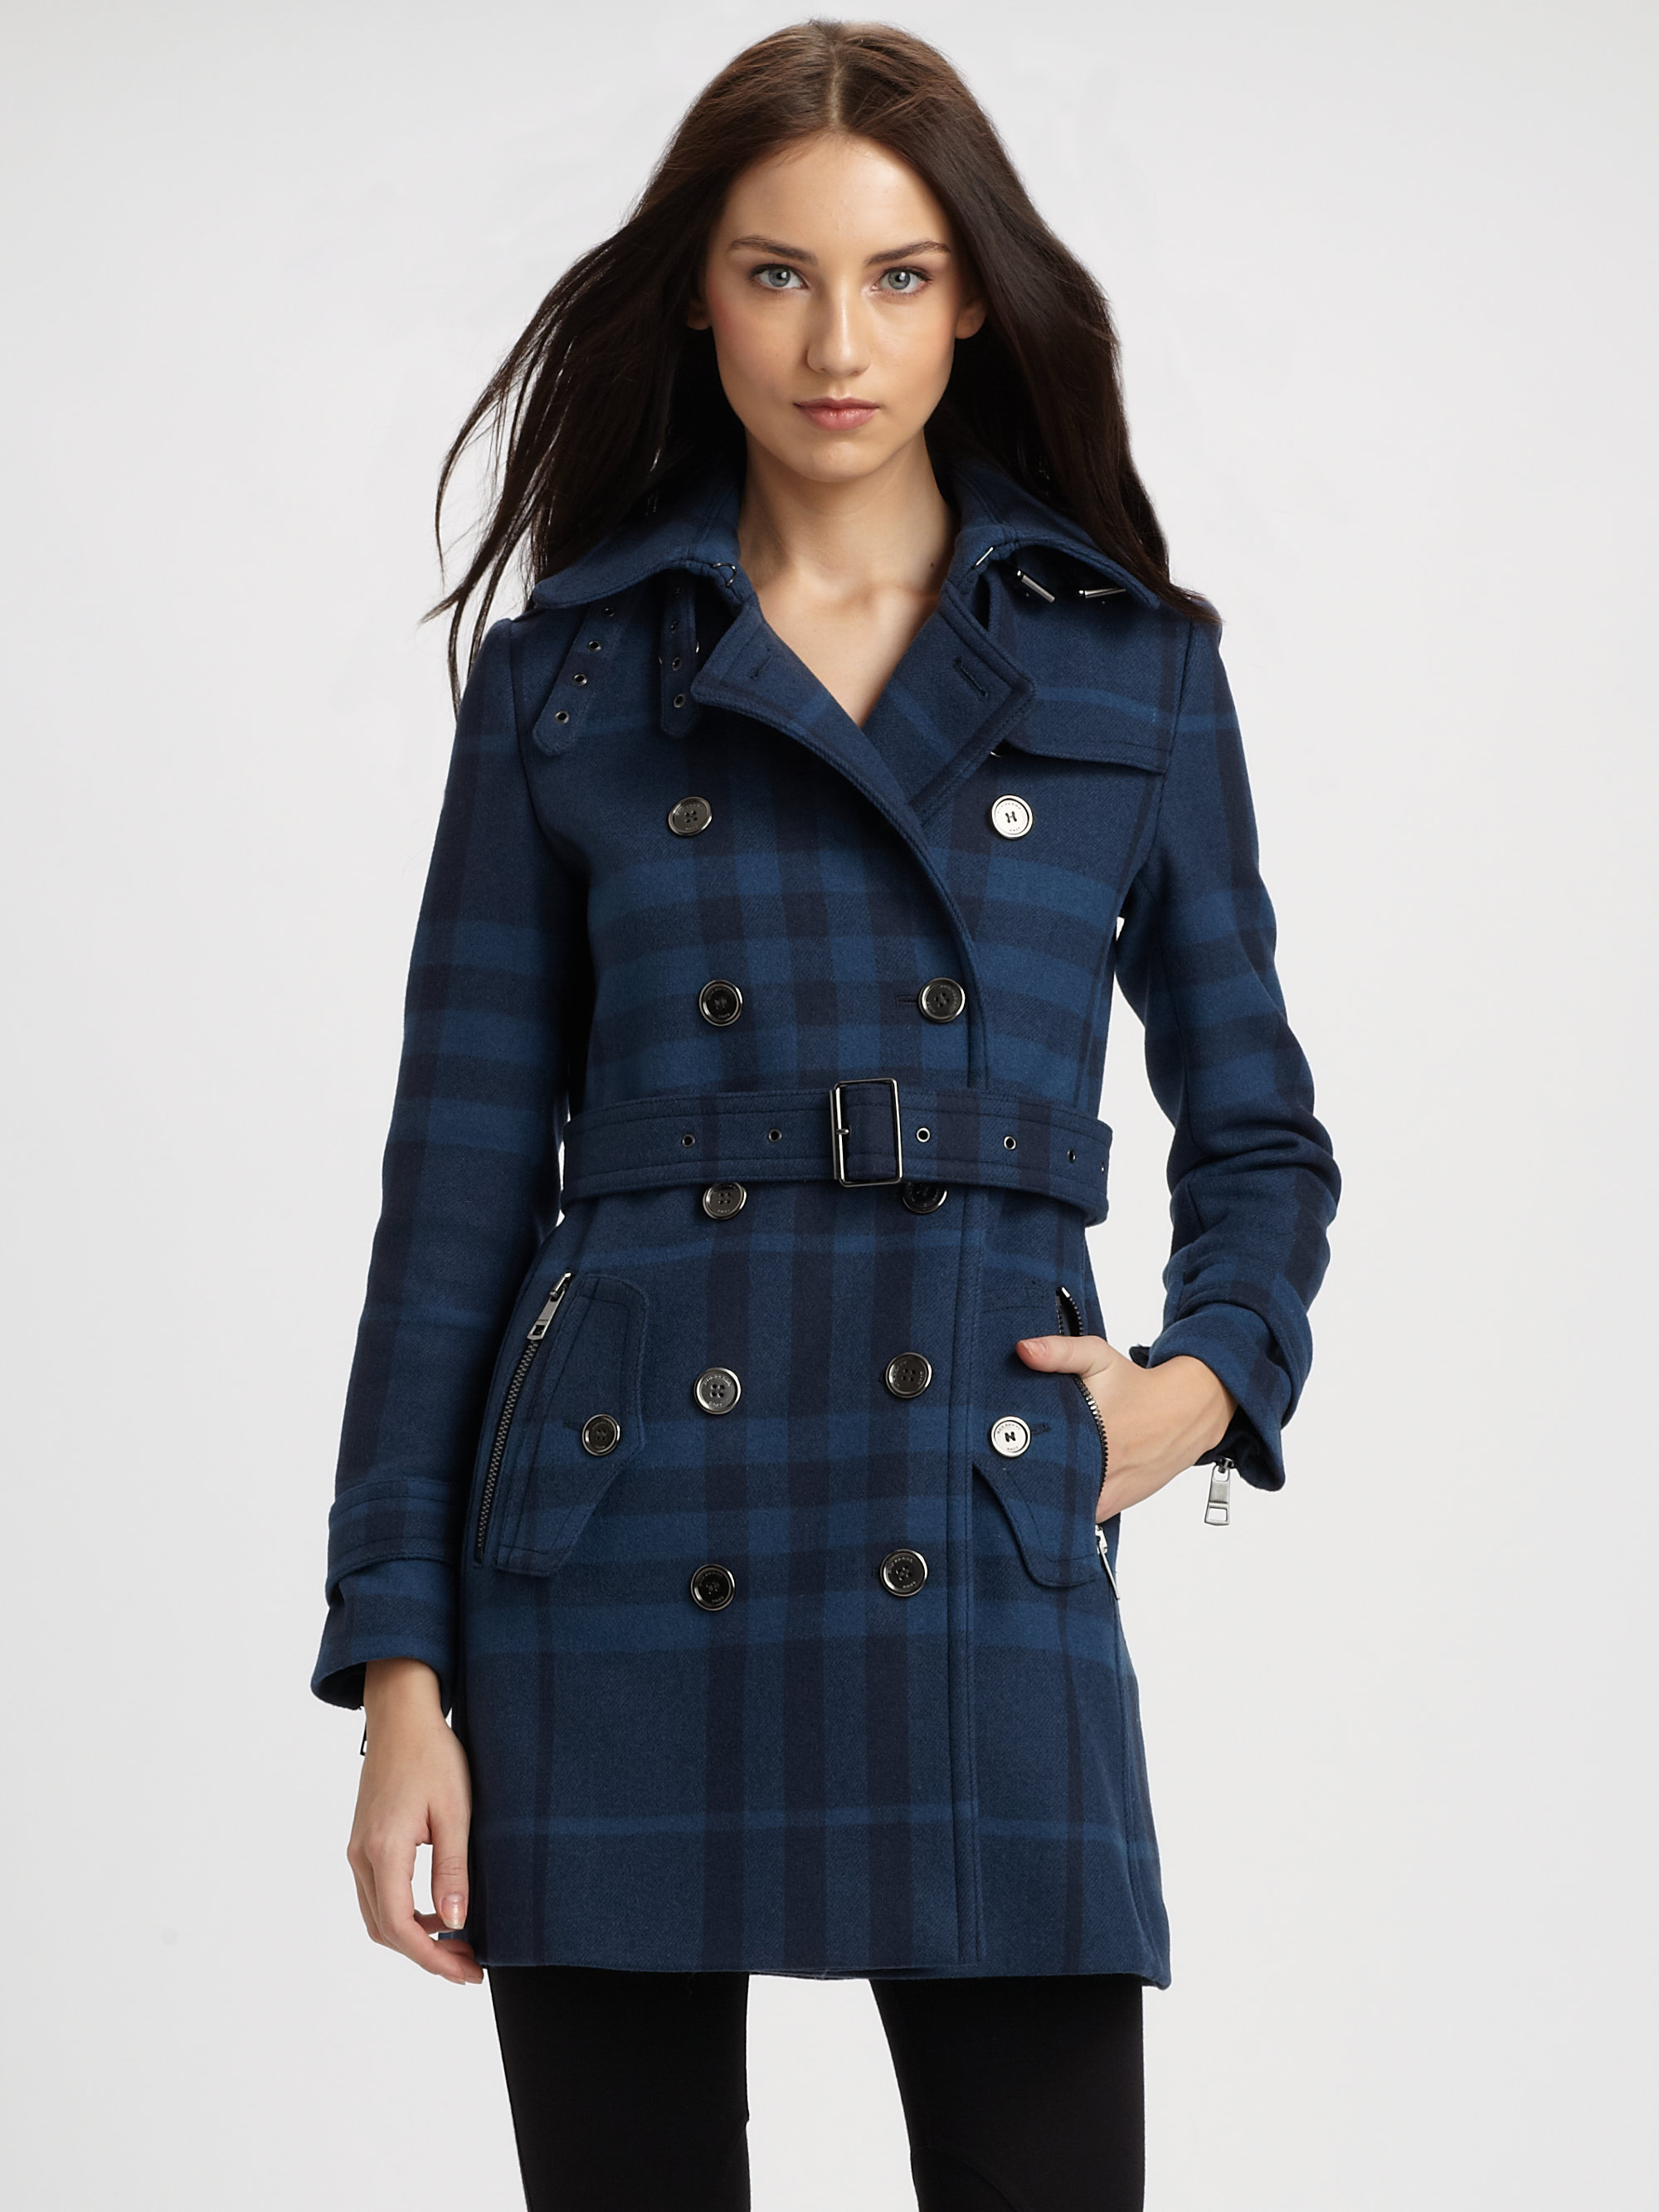 Burberry Brit Plaid Wool Blend Coat In Blue Lyst